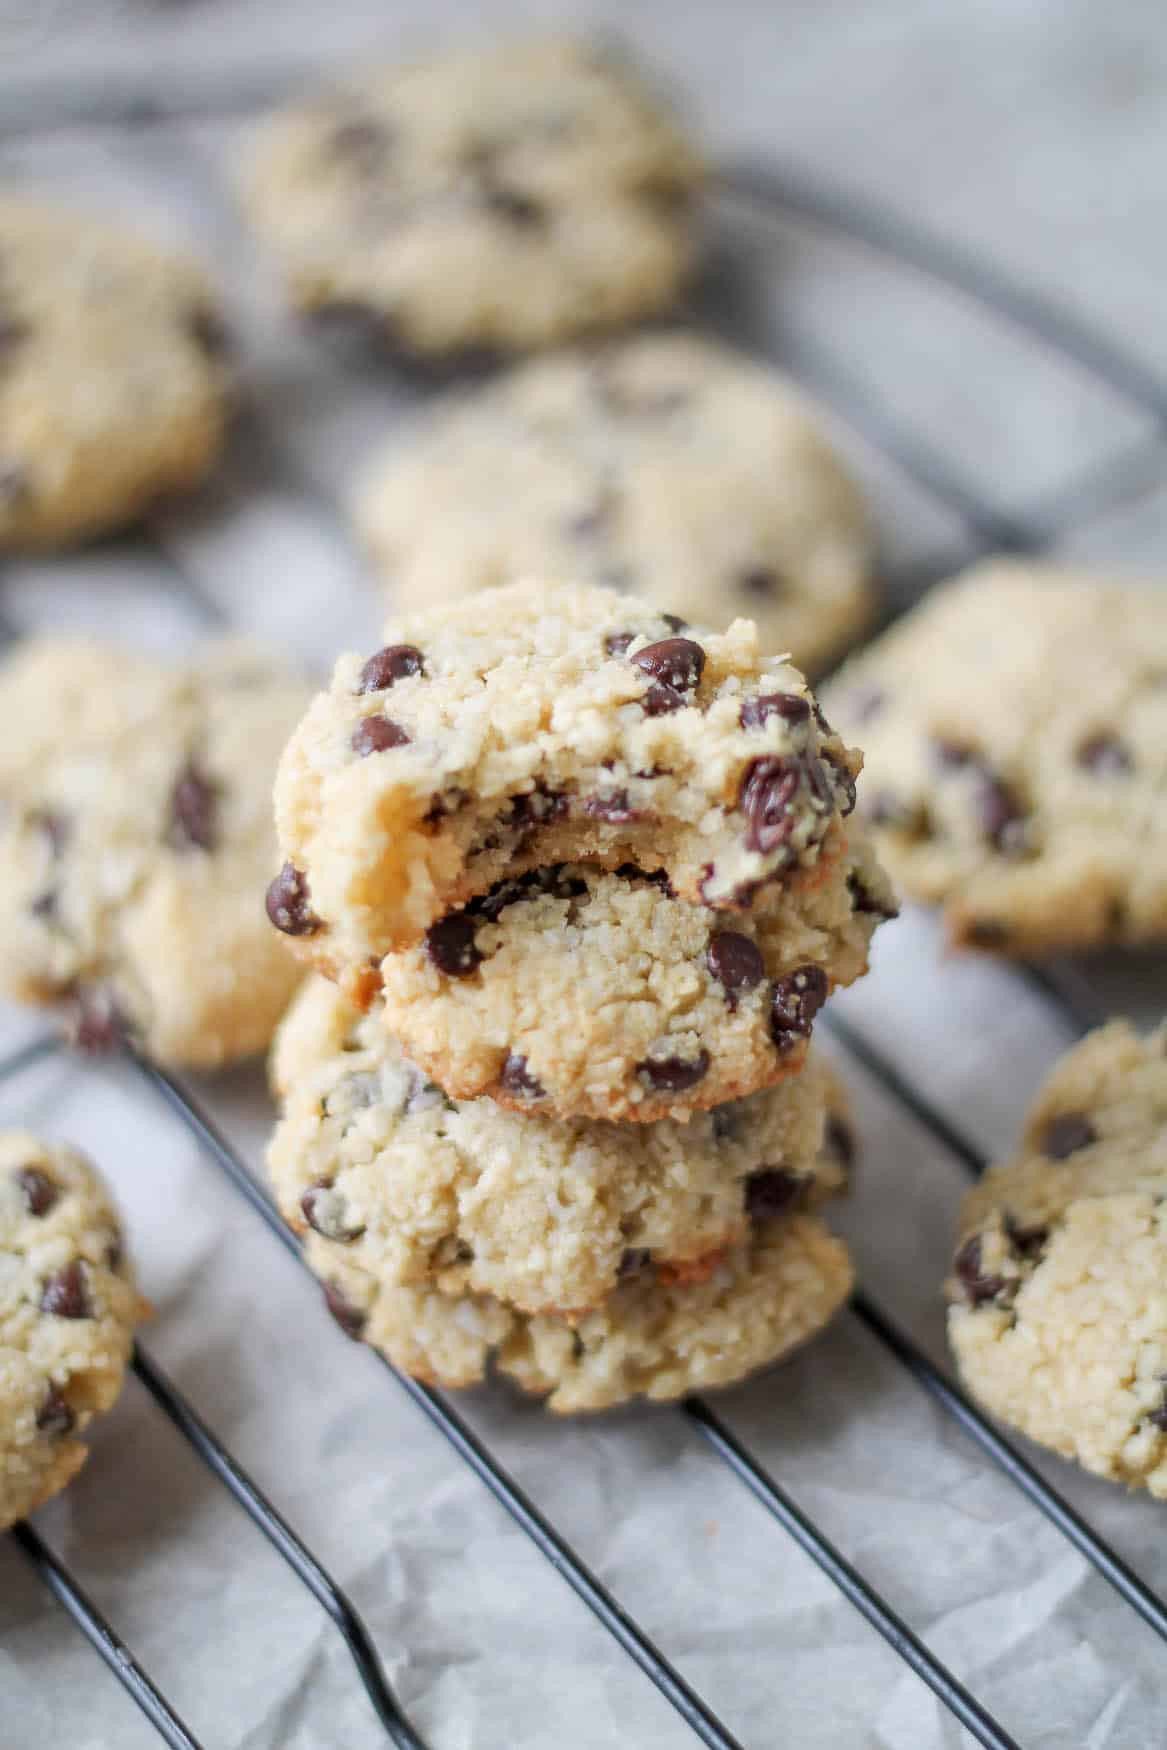 Coconut Chocolate Chip Cookies  Almond & Coconut Chocolate Chip Cookies Gluten Free